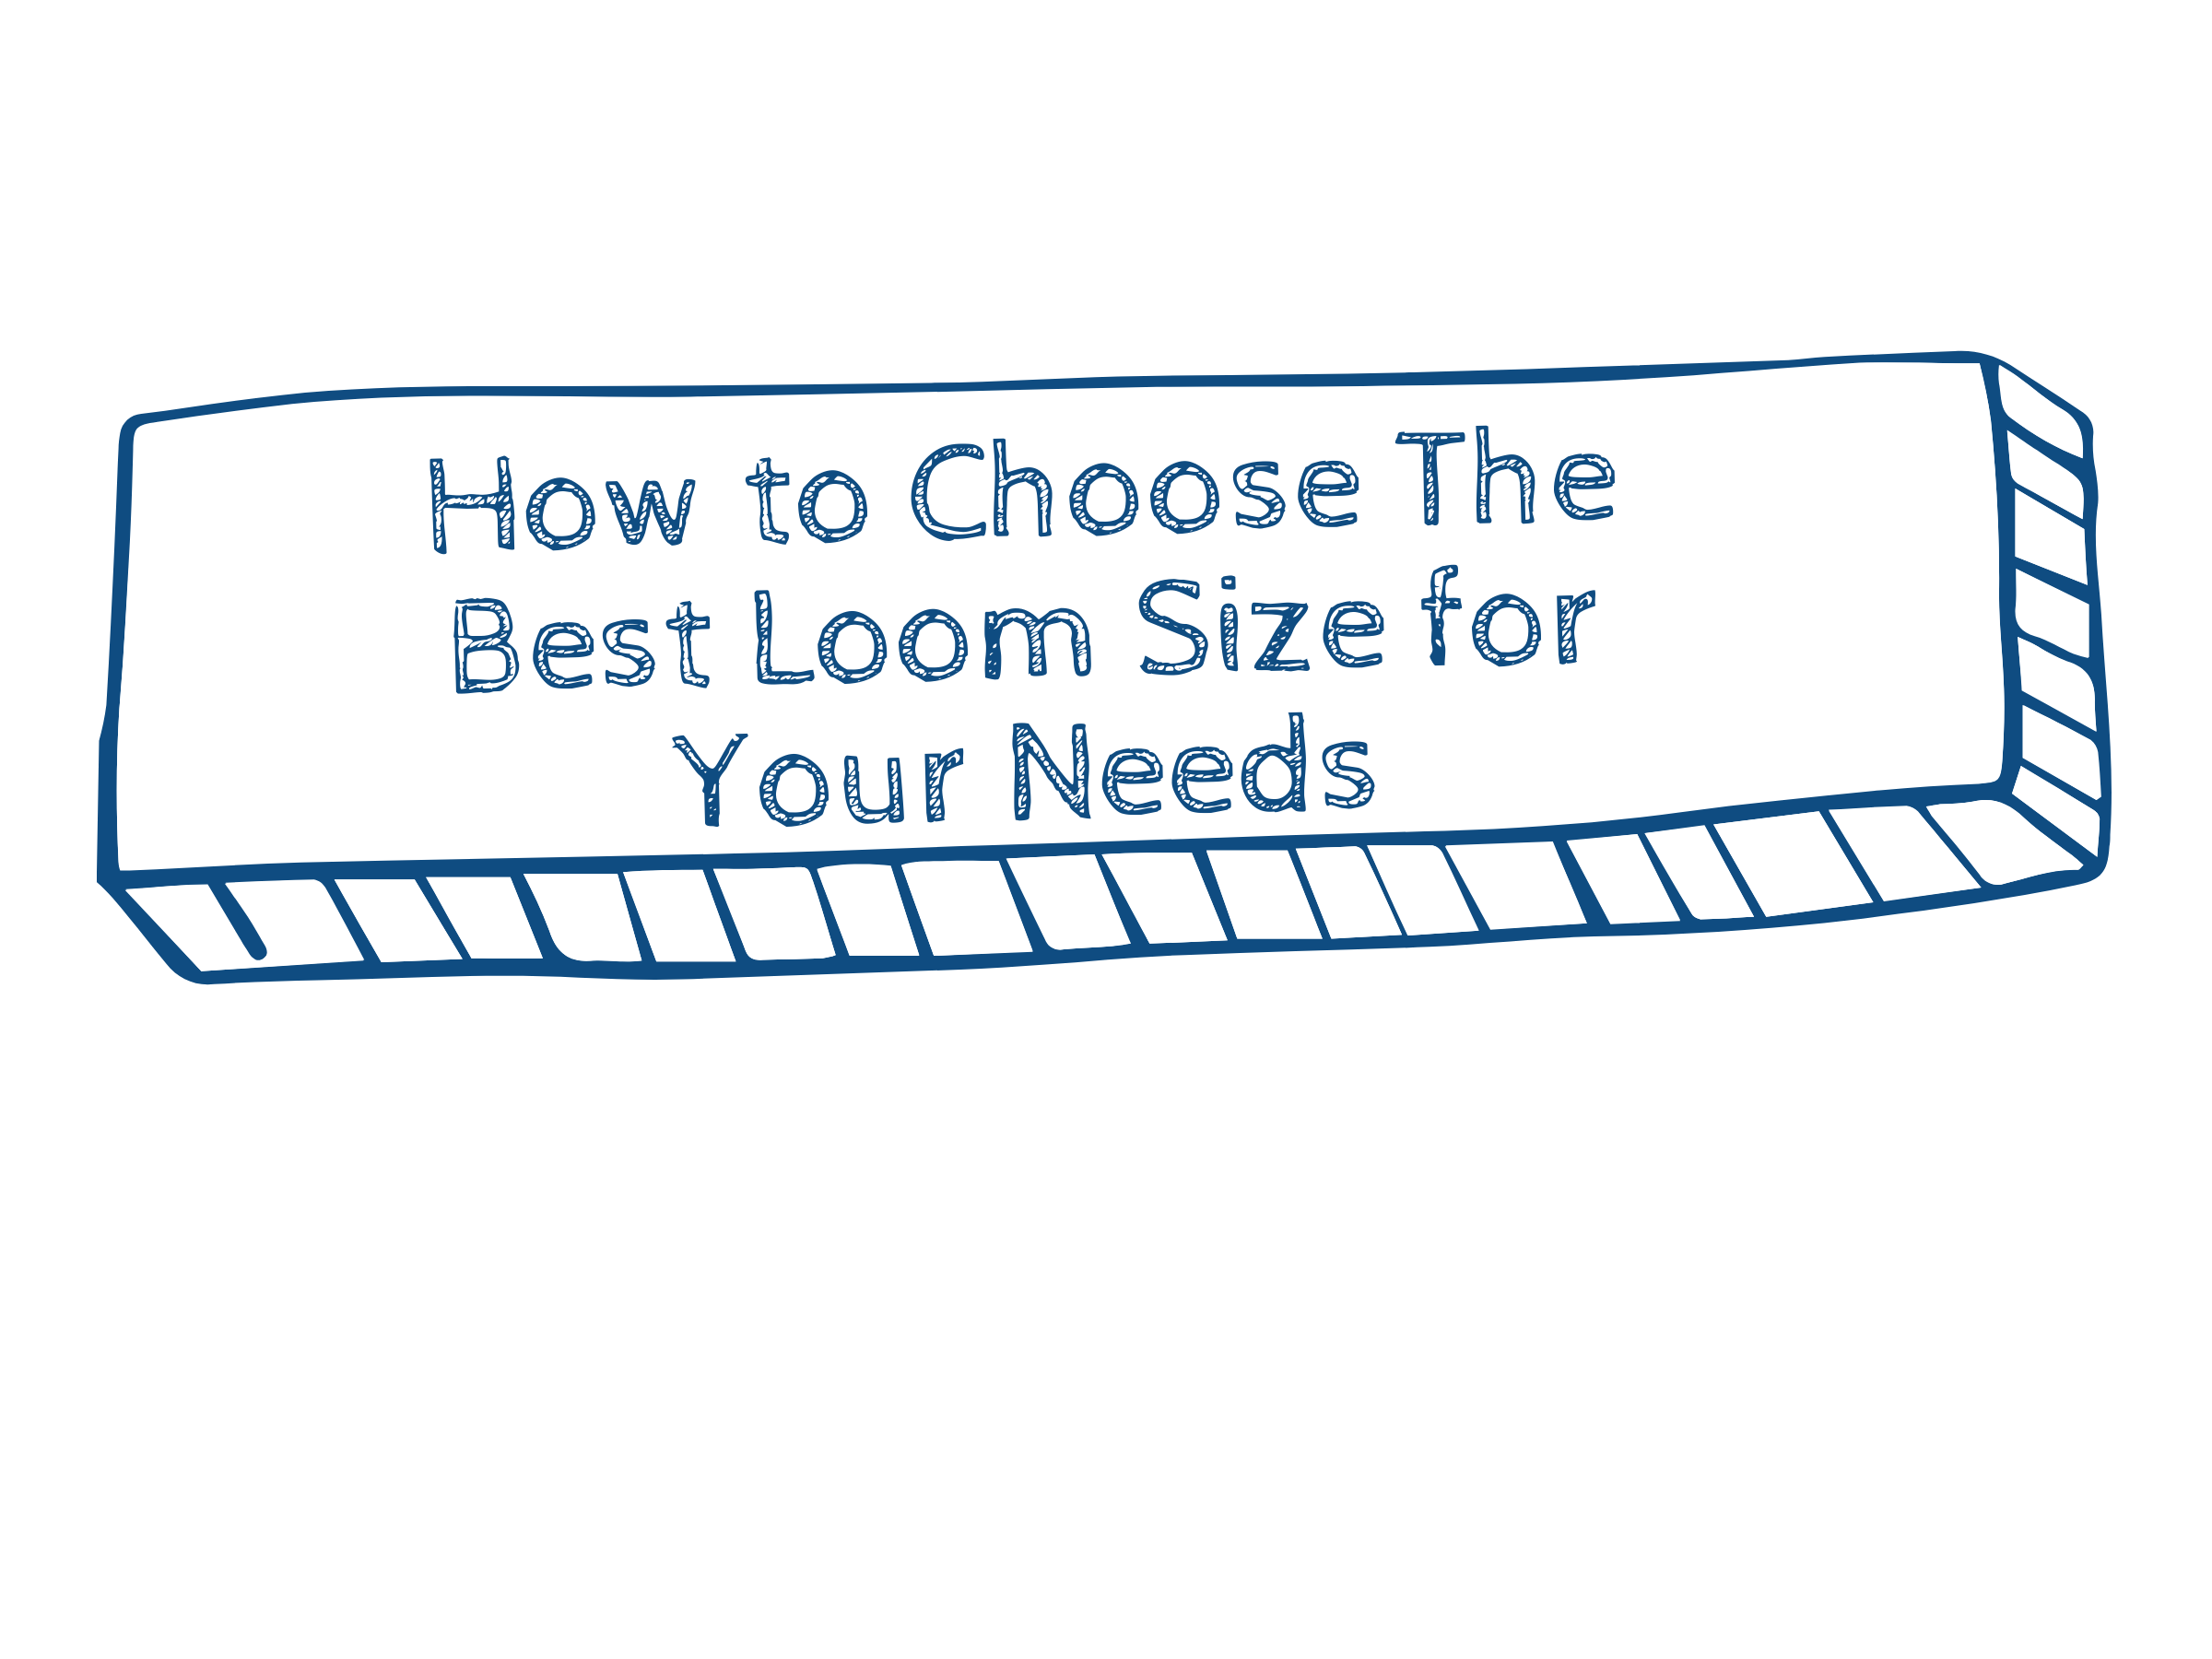 How to Choose The Best Loom Size for Your Needs